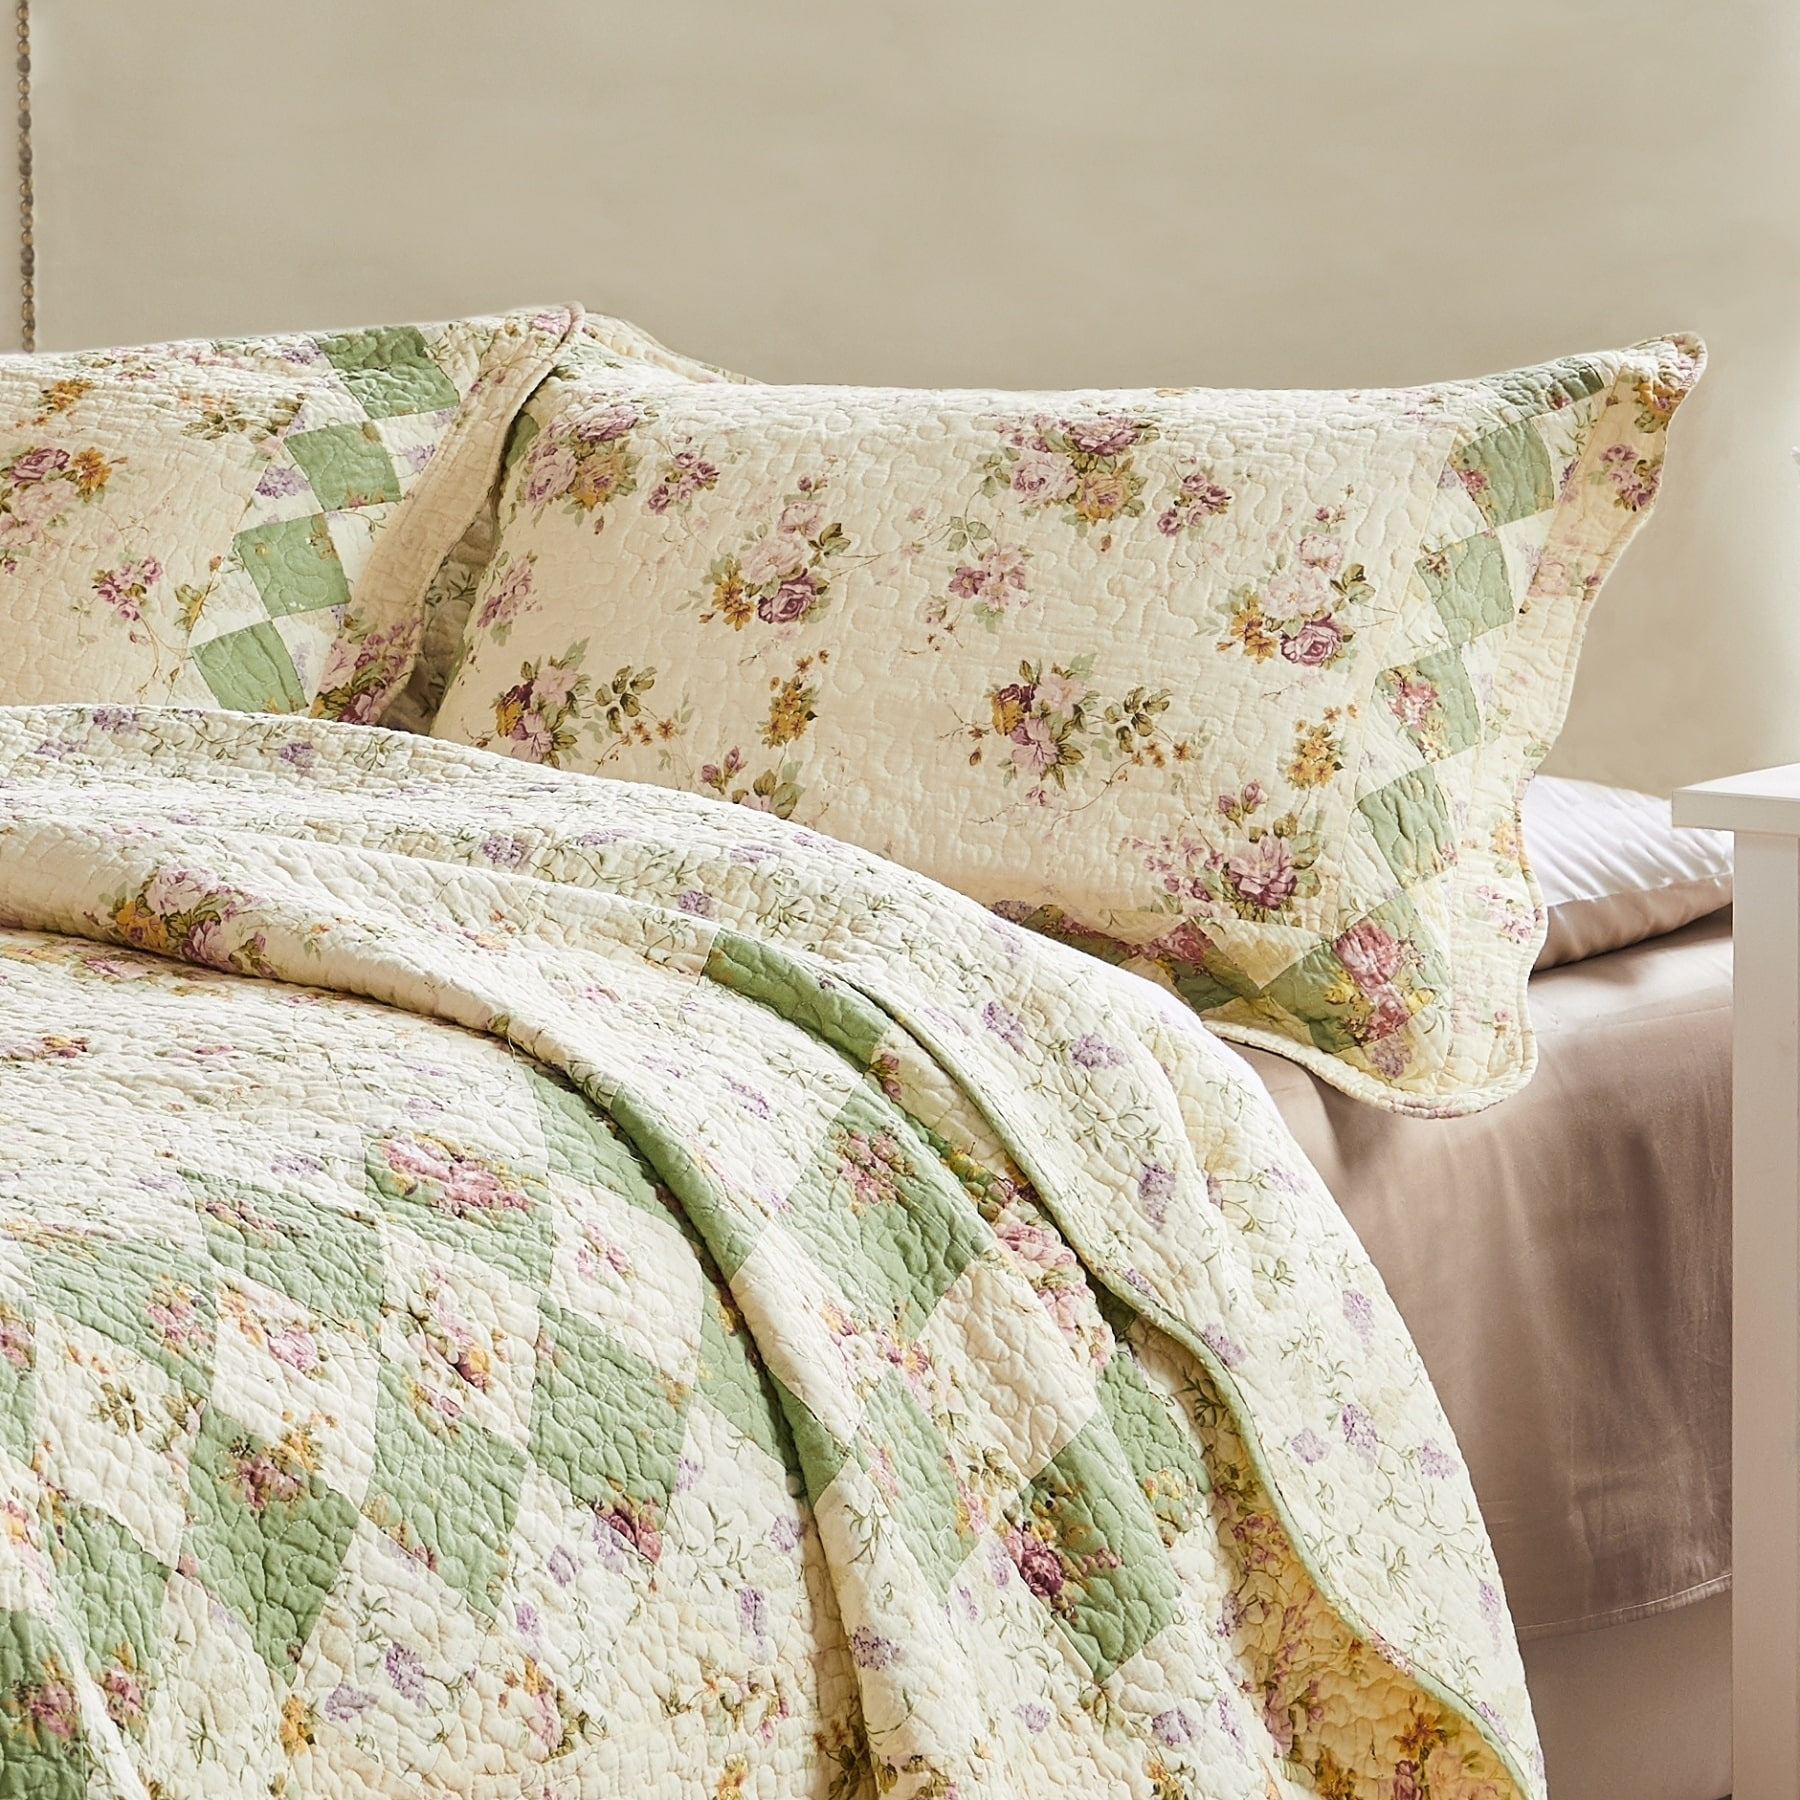 Shop Greenland Home Fashions Bliss King Sized Pillow Shams Set Of